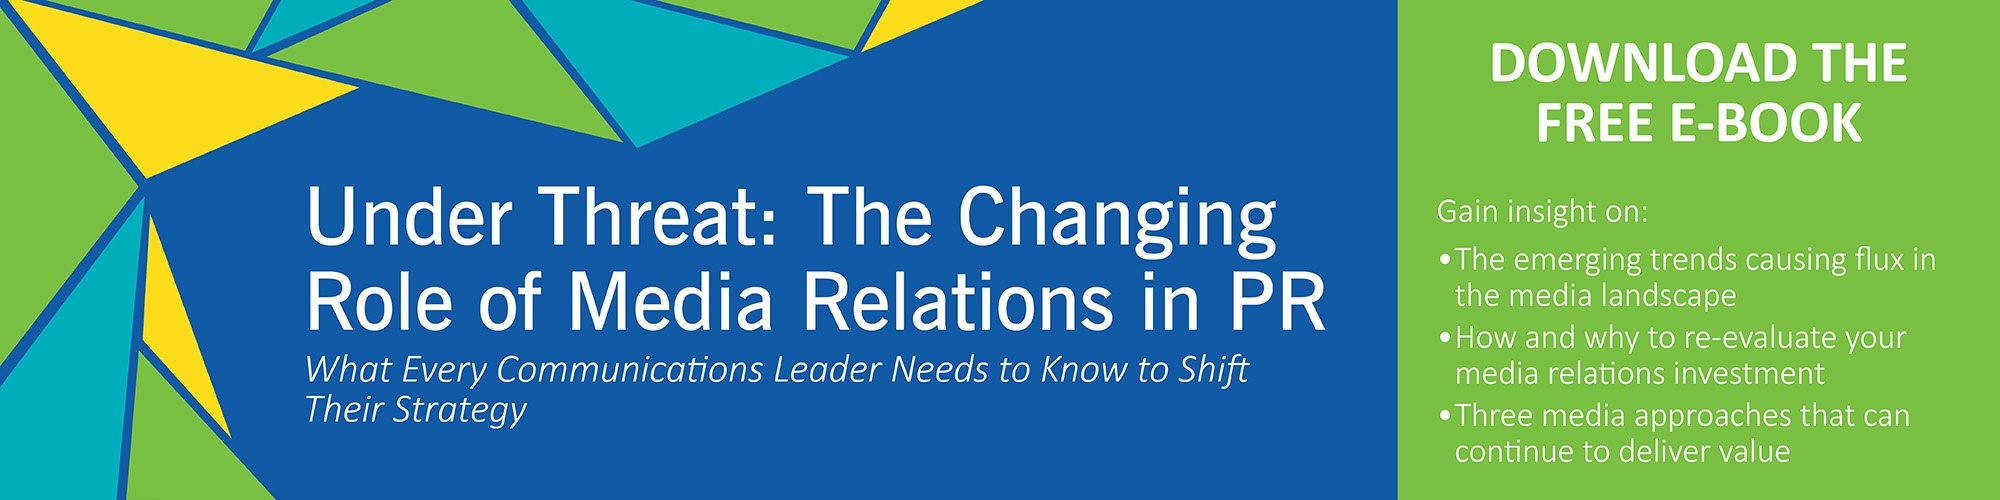 Under Threat: The Changing Role of Media Relations in PR [E-Book]